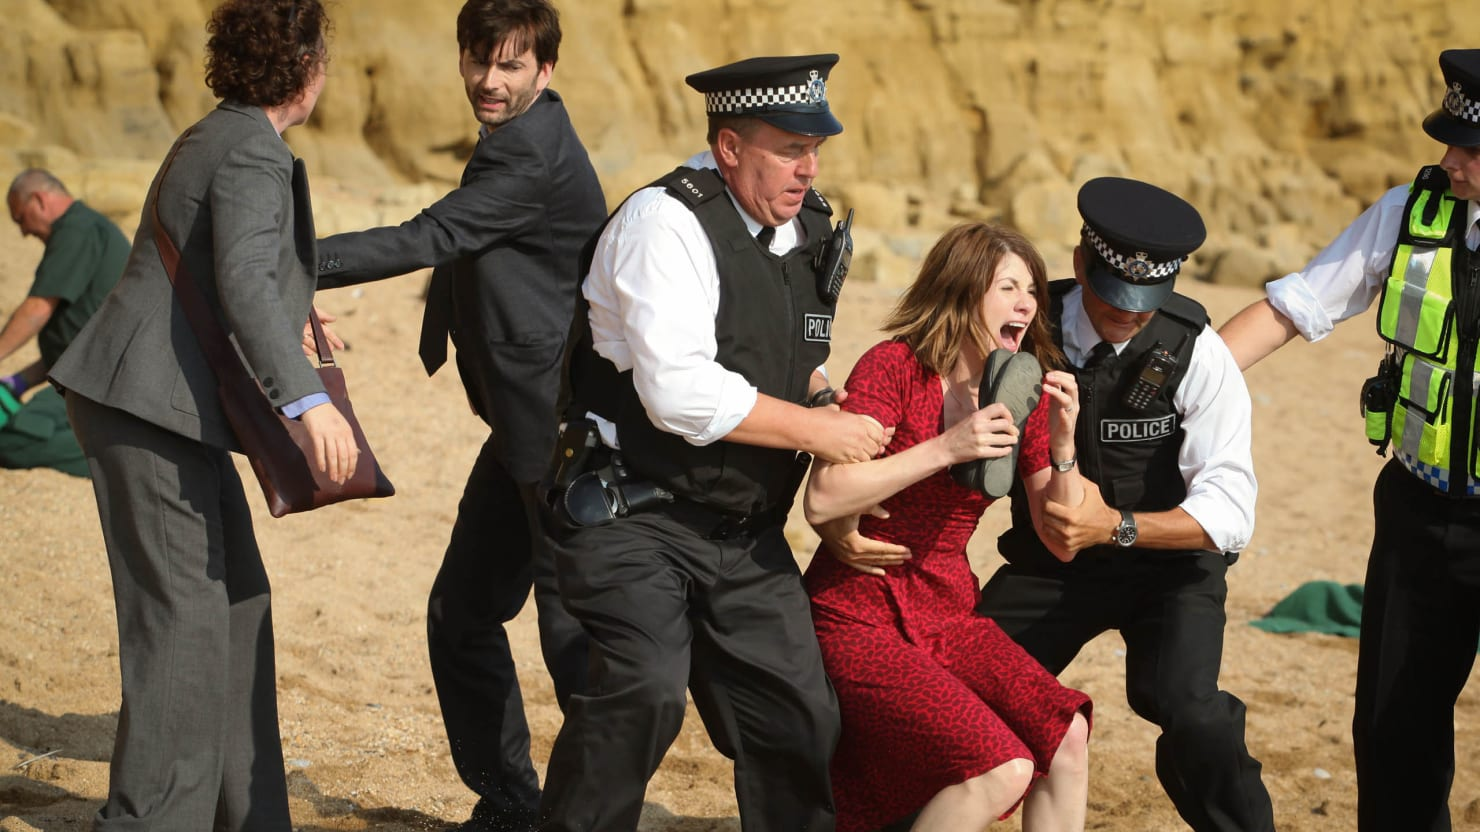 'Broadchurch' Is Great TV for Fans of 'Downton Abbey,' 'Doctor Who,' and 'Prime Suspect'